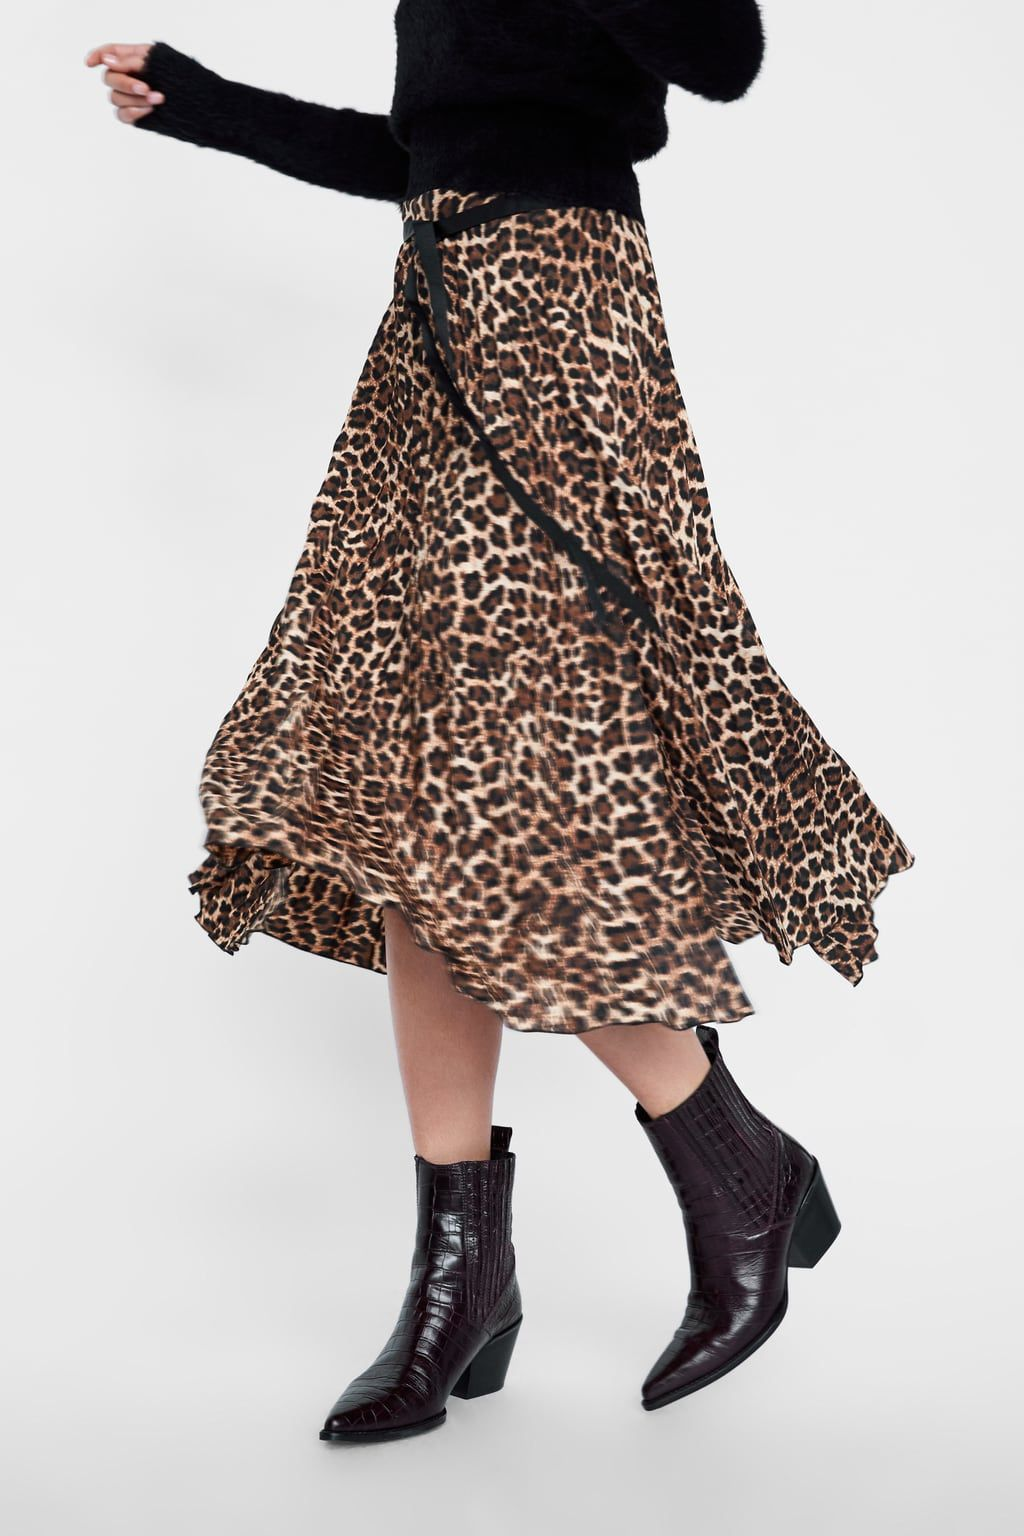 975b4733a Animal print pleated skirt in 2019 | Wishlist | Outfits, Pleated ...